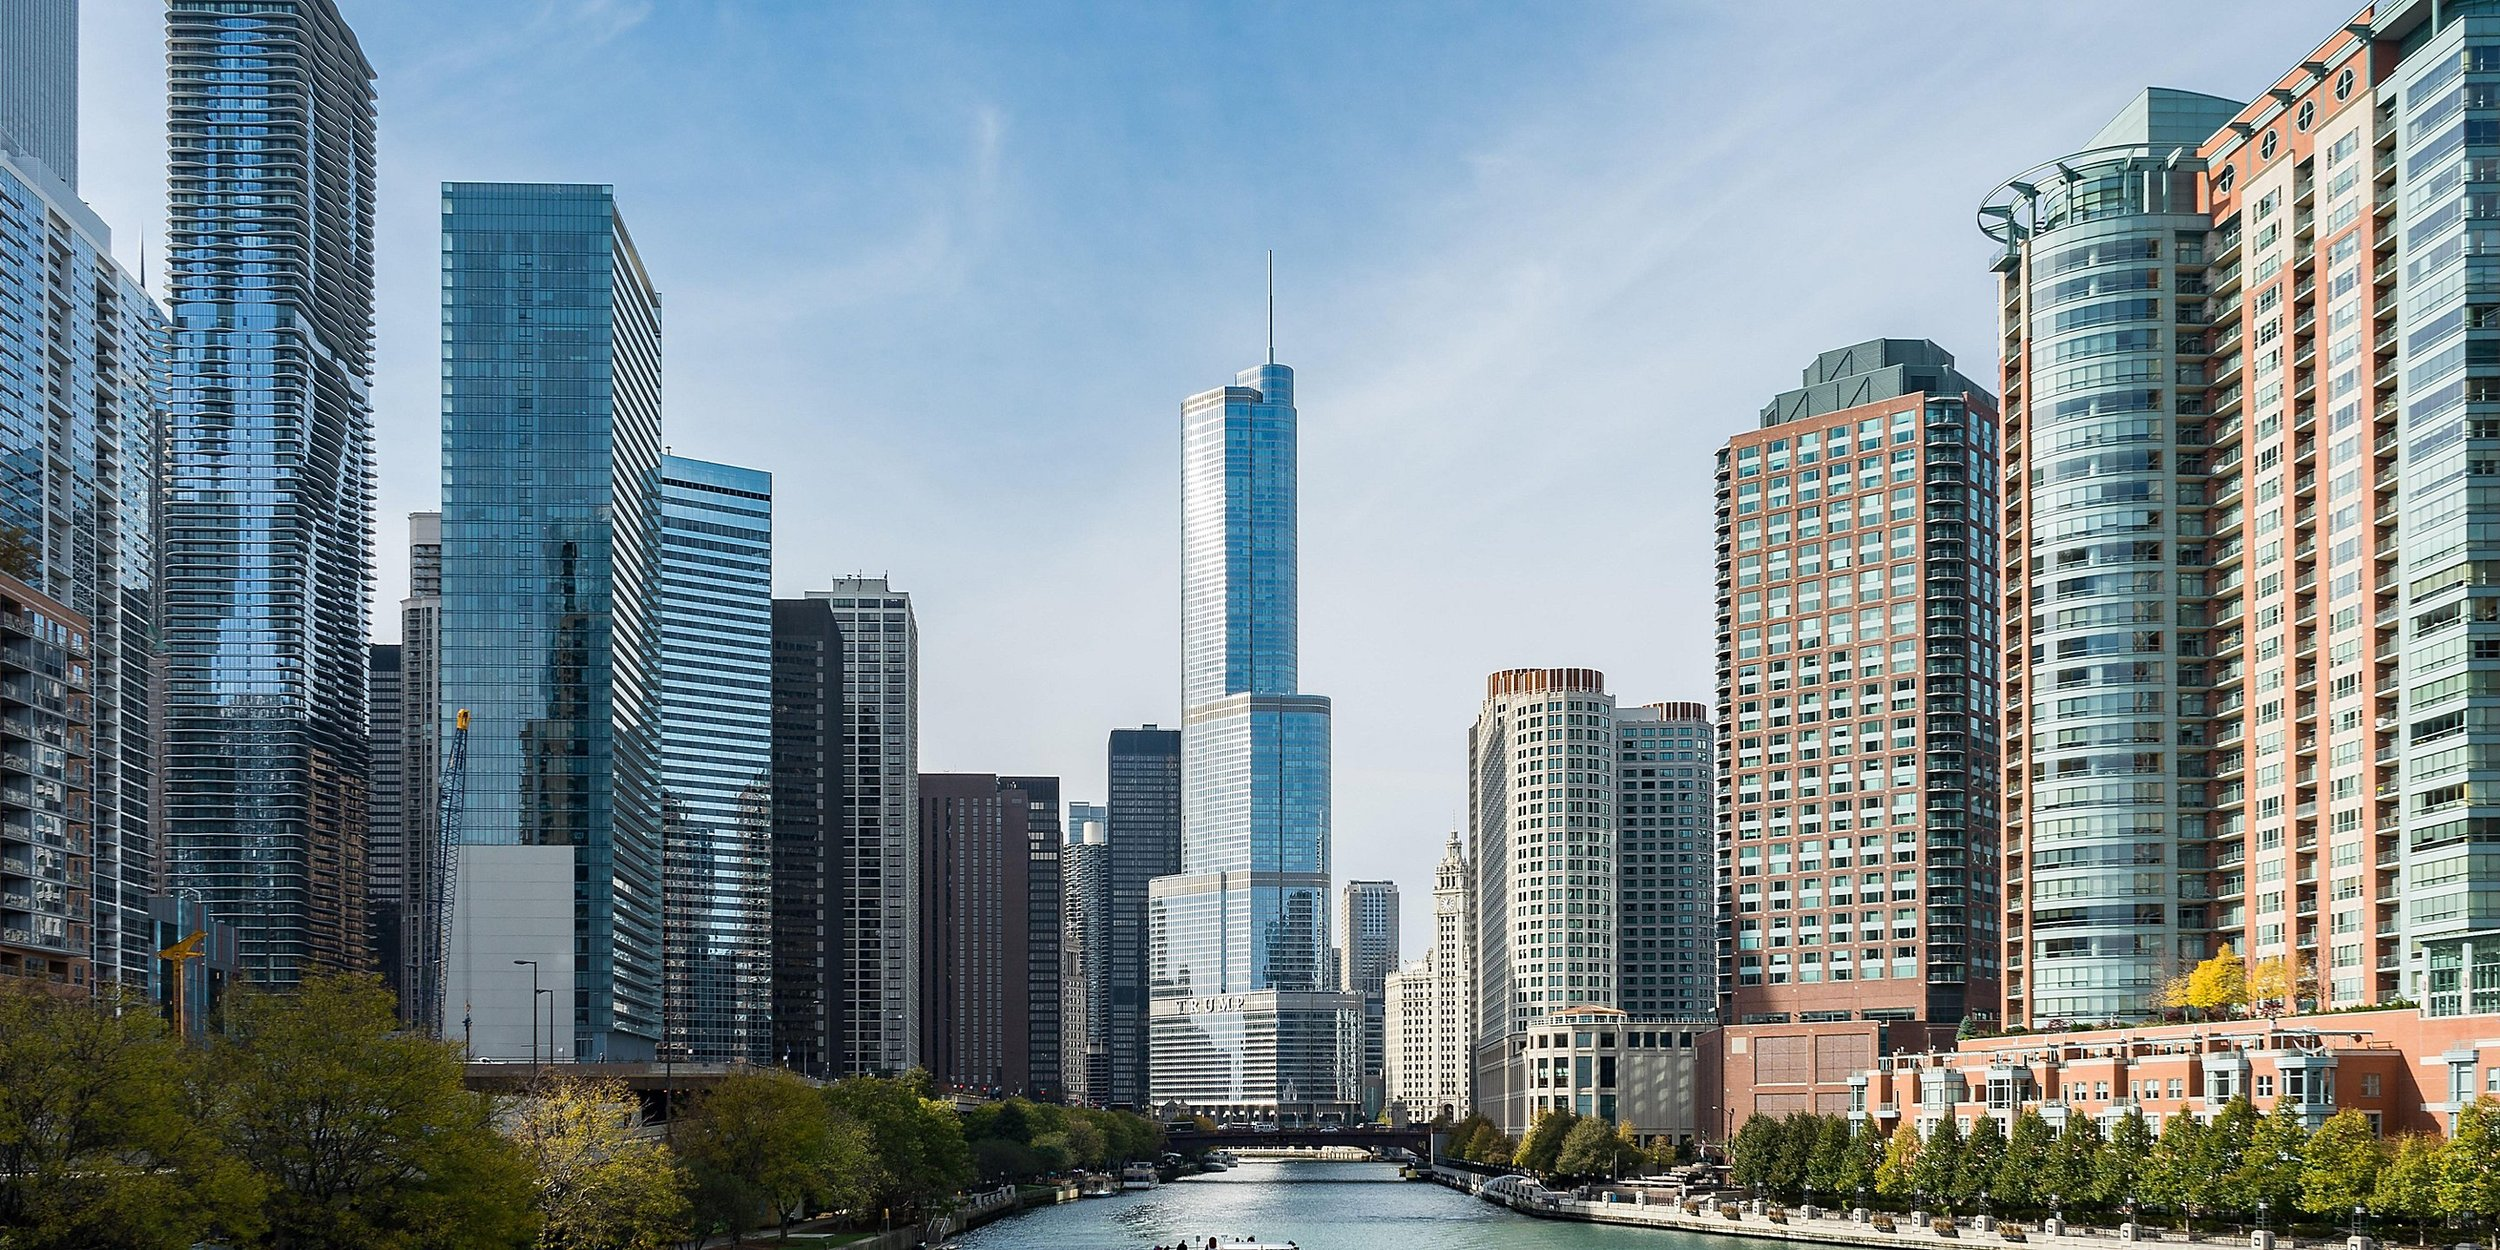 Enchanting City - Join us on Chicago's Historical Michigan Avenue for an enchanting evening. You don't want to miss this!